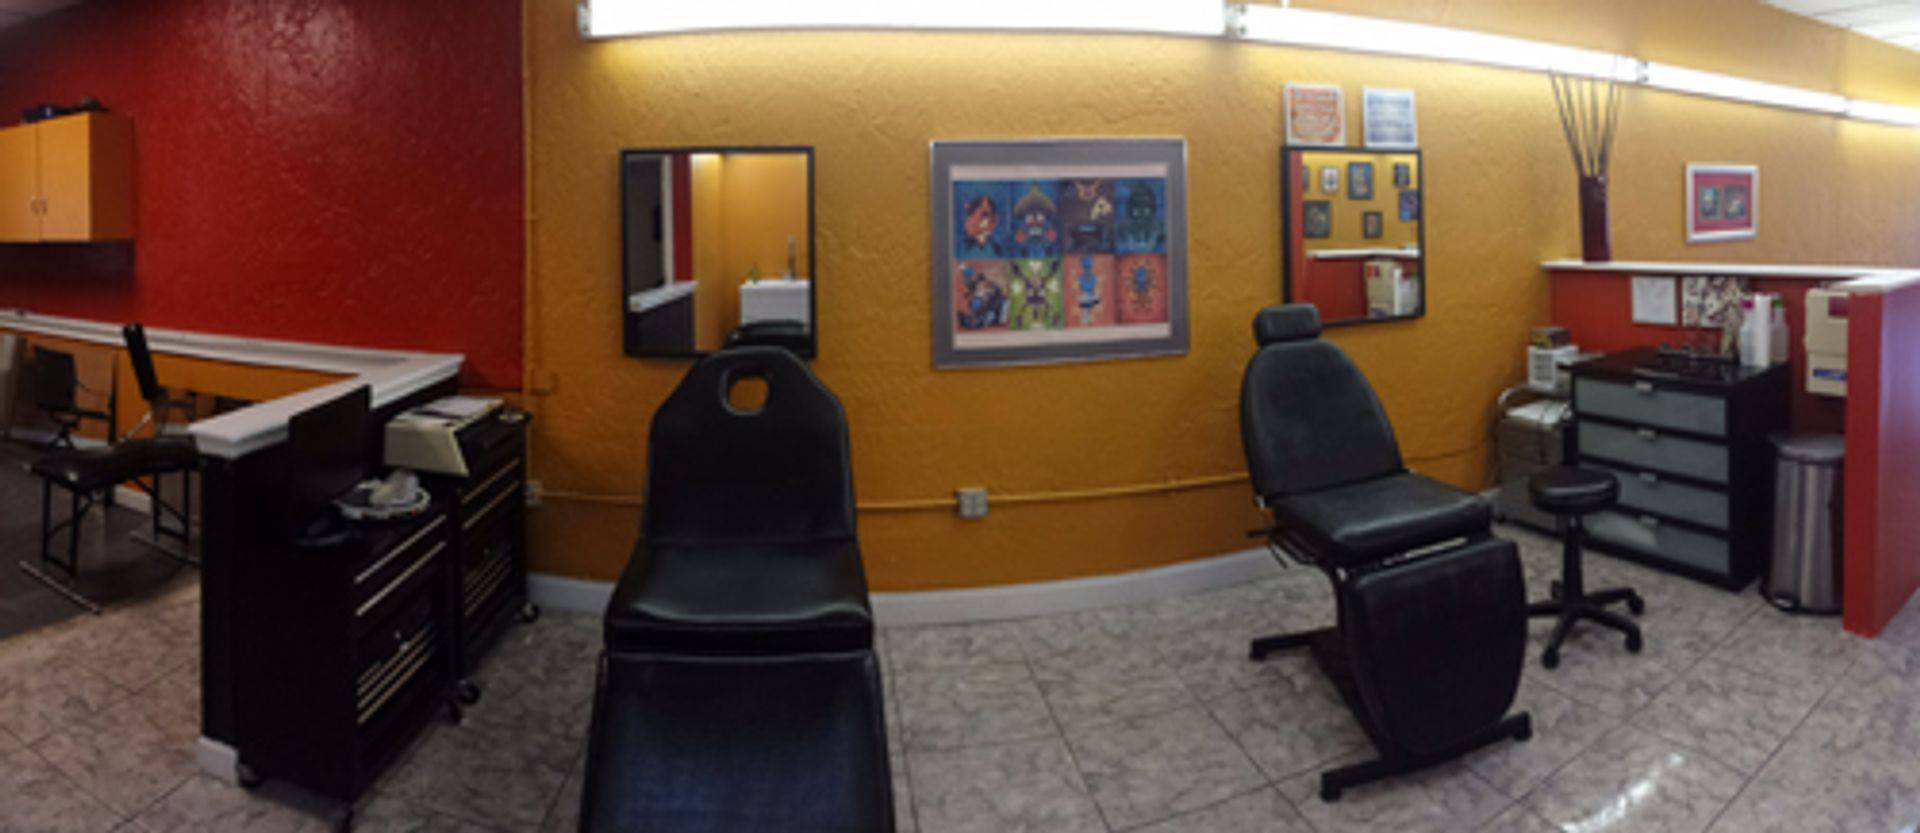 Tattoo Room